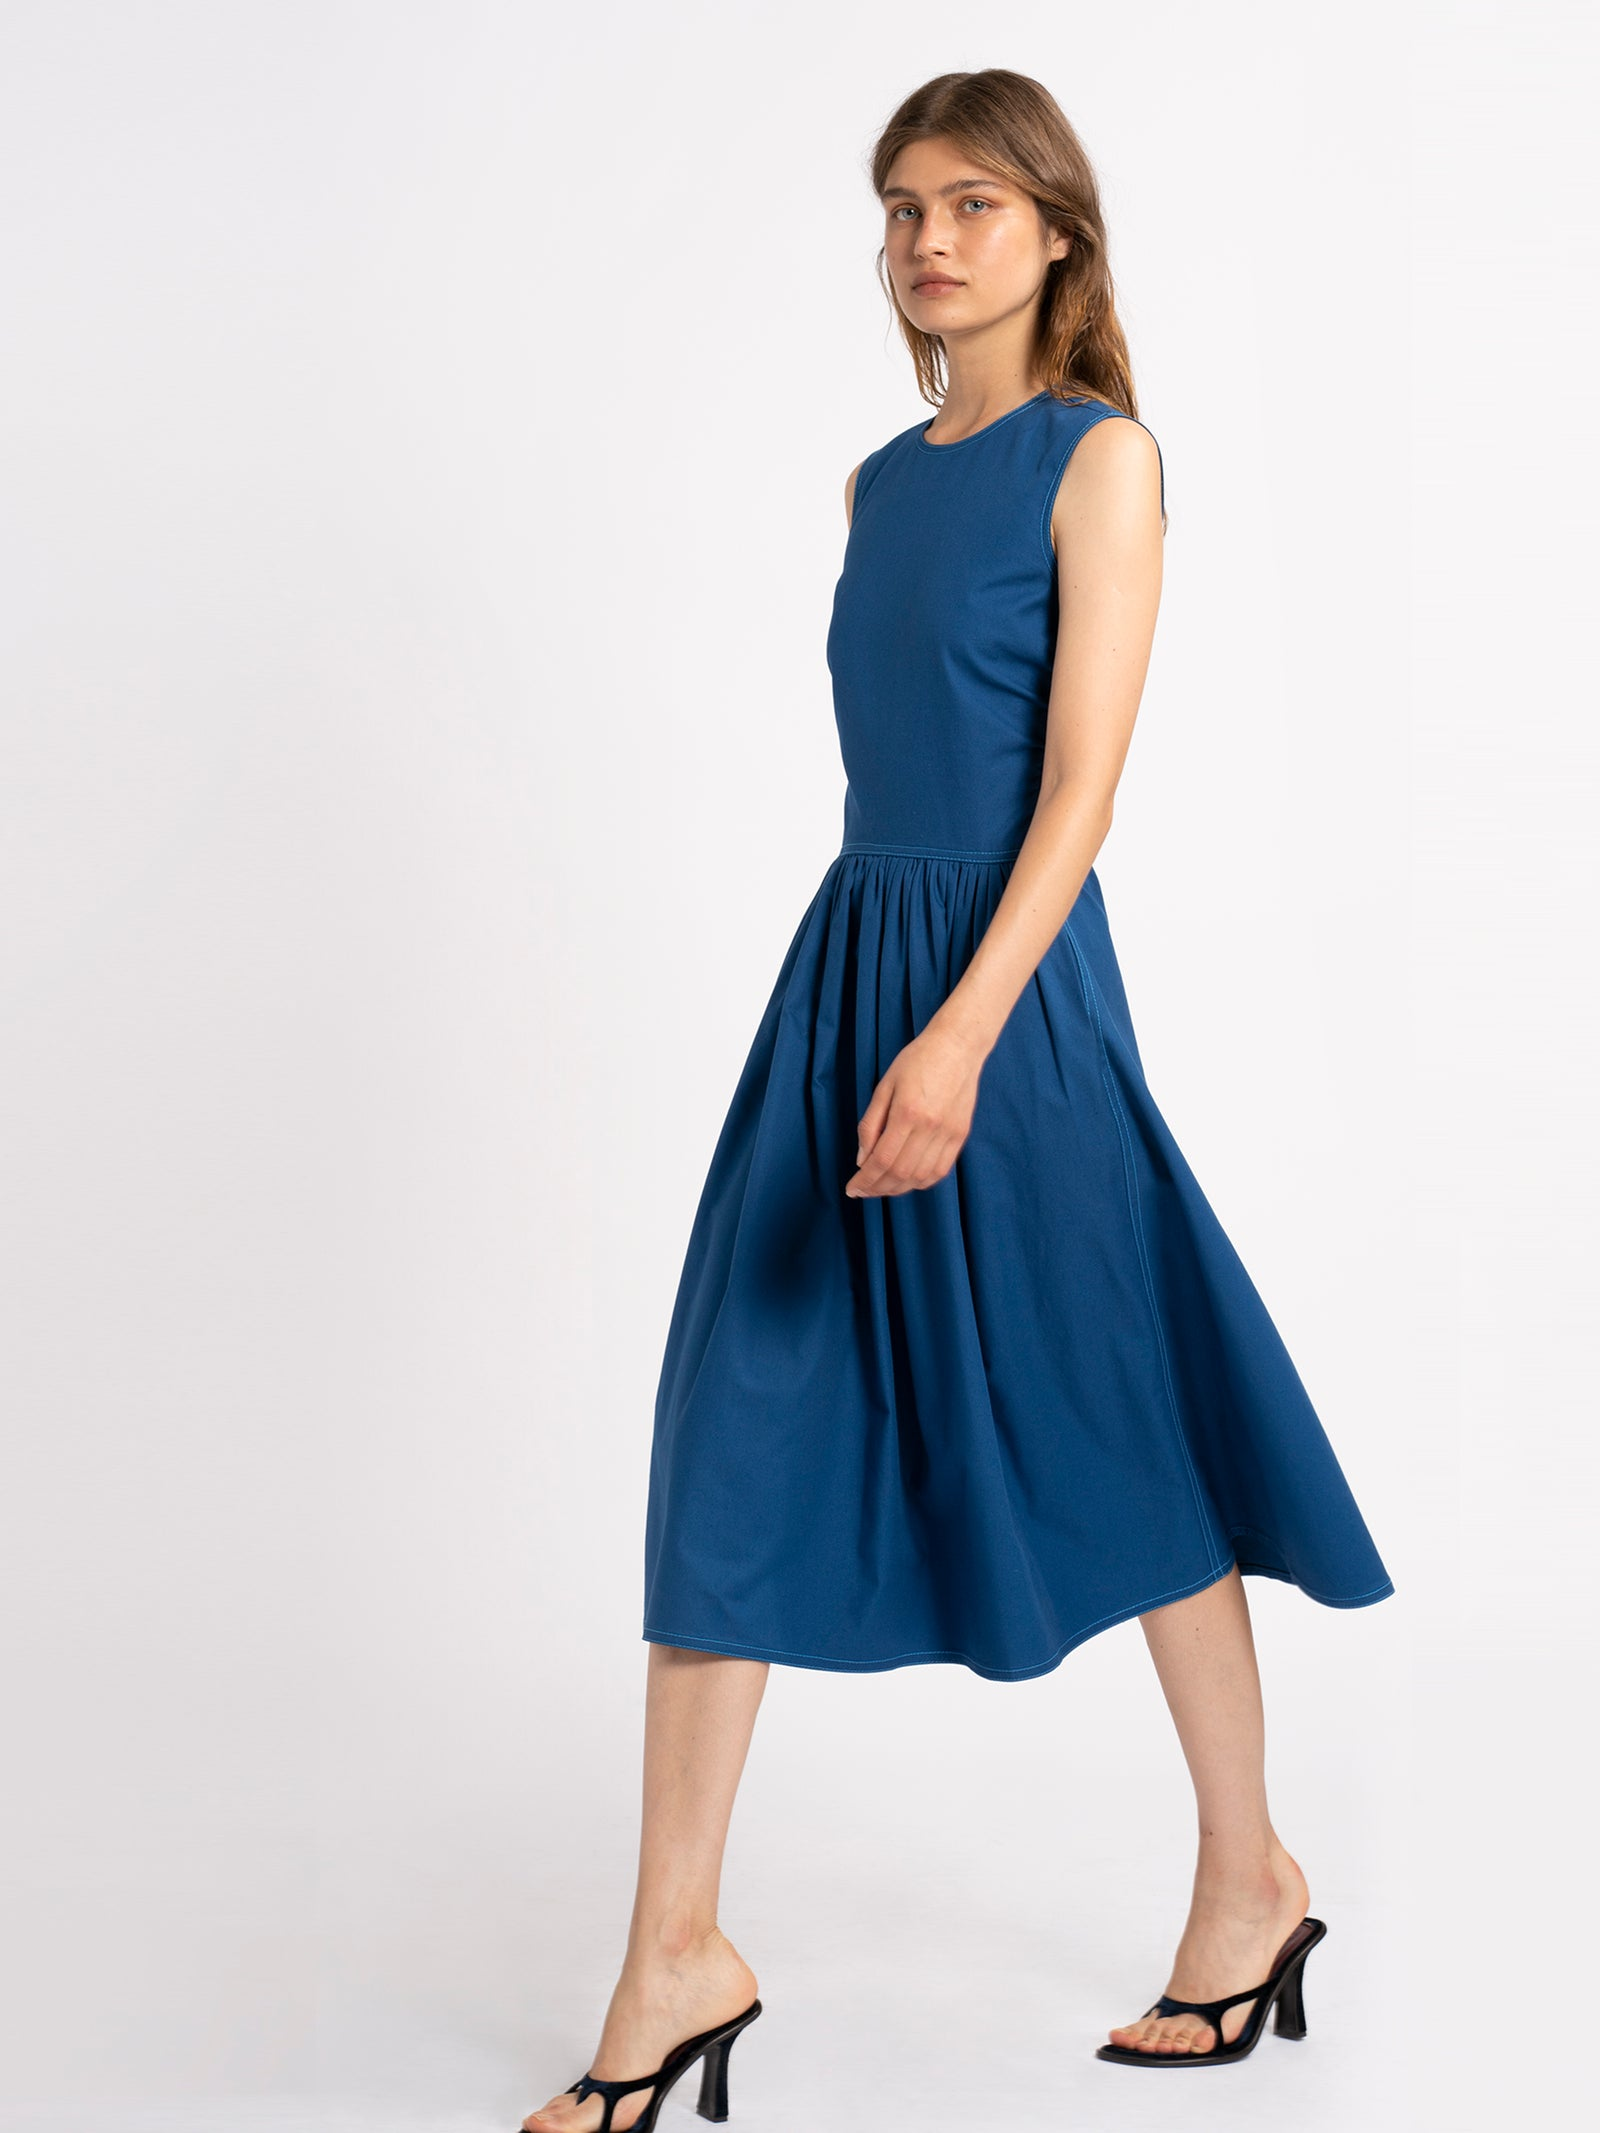 Violetta Cotton Canvas Dress